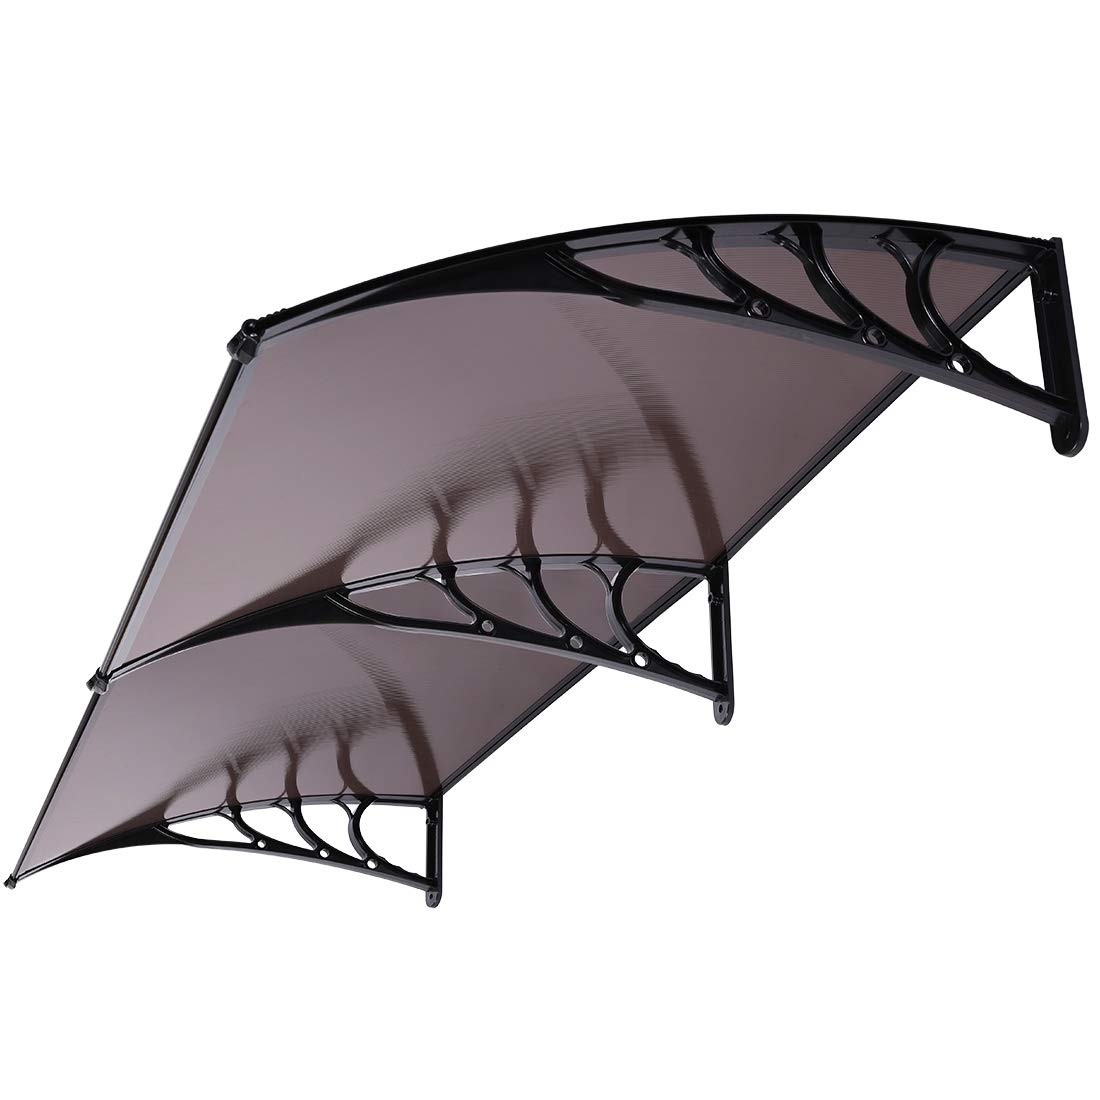 VIVOHOME Polycarbonate Window Door Awning Canopy Brown with Black Bracket 40 Inch x 80 Inch by VIVOHOME